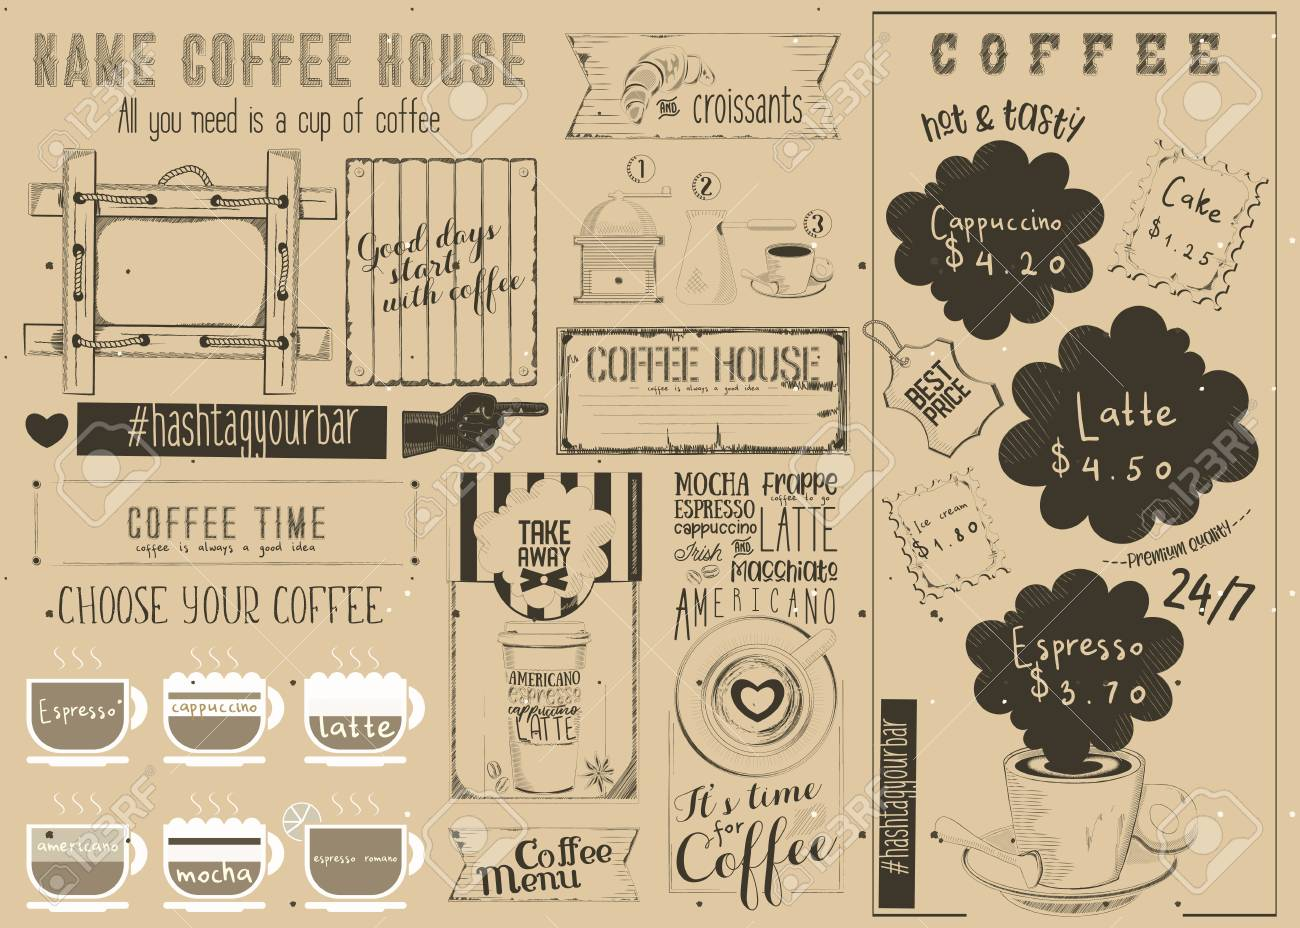 Coffee menu placemat design craft template for coffee shop and coffee menu placemat design craft template for coffee shop and cafeteria retro style table ccuart Choice Image